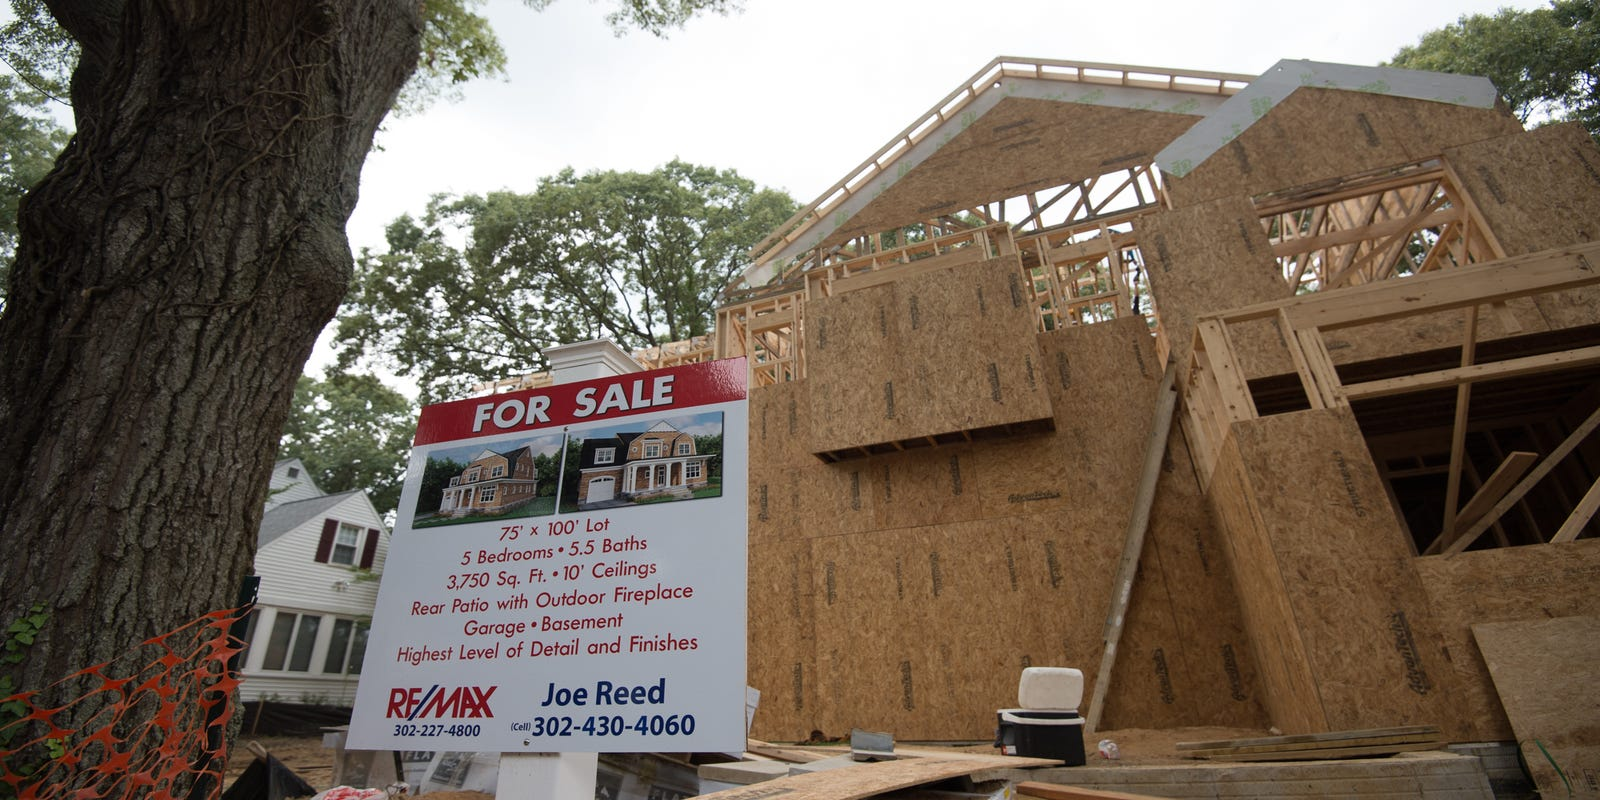 Beach real estate prices shoot up in Delaware in competitive market